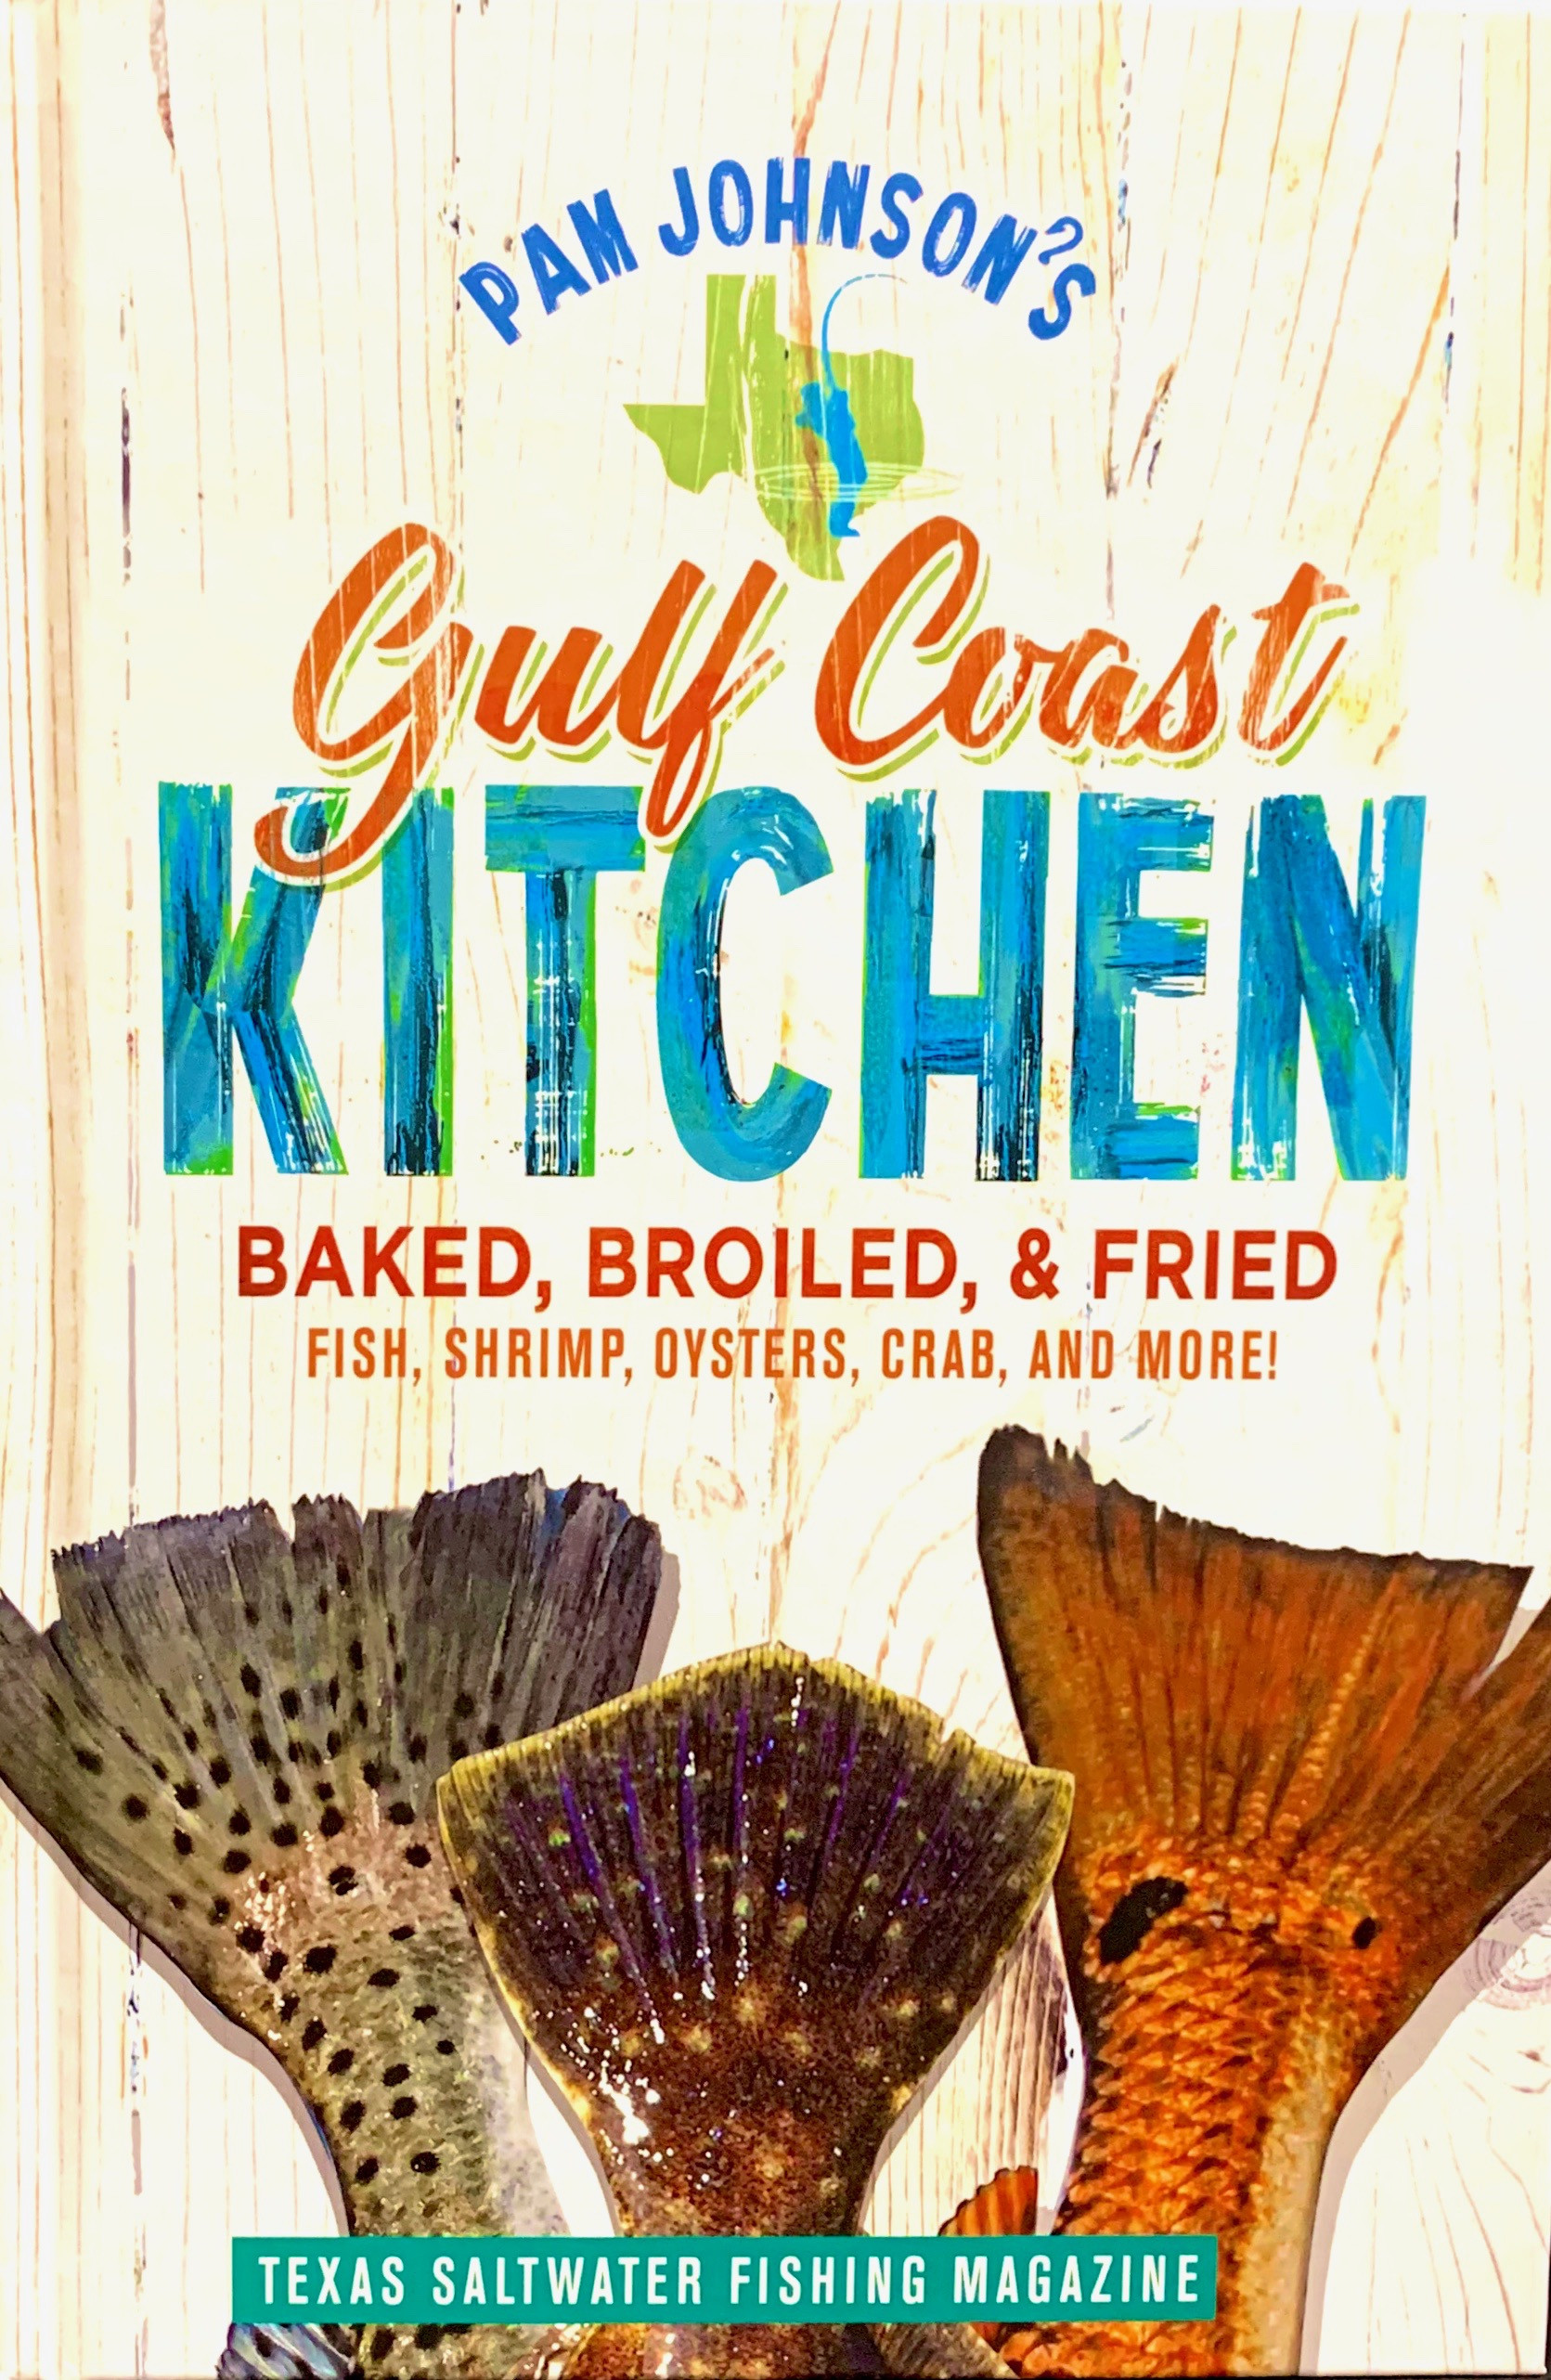 Gulf Coast Kitchen Baked, Broiled, & Fried Cookbook by Pam Johnson